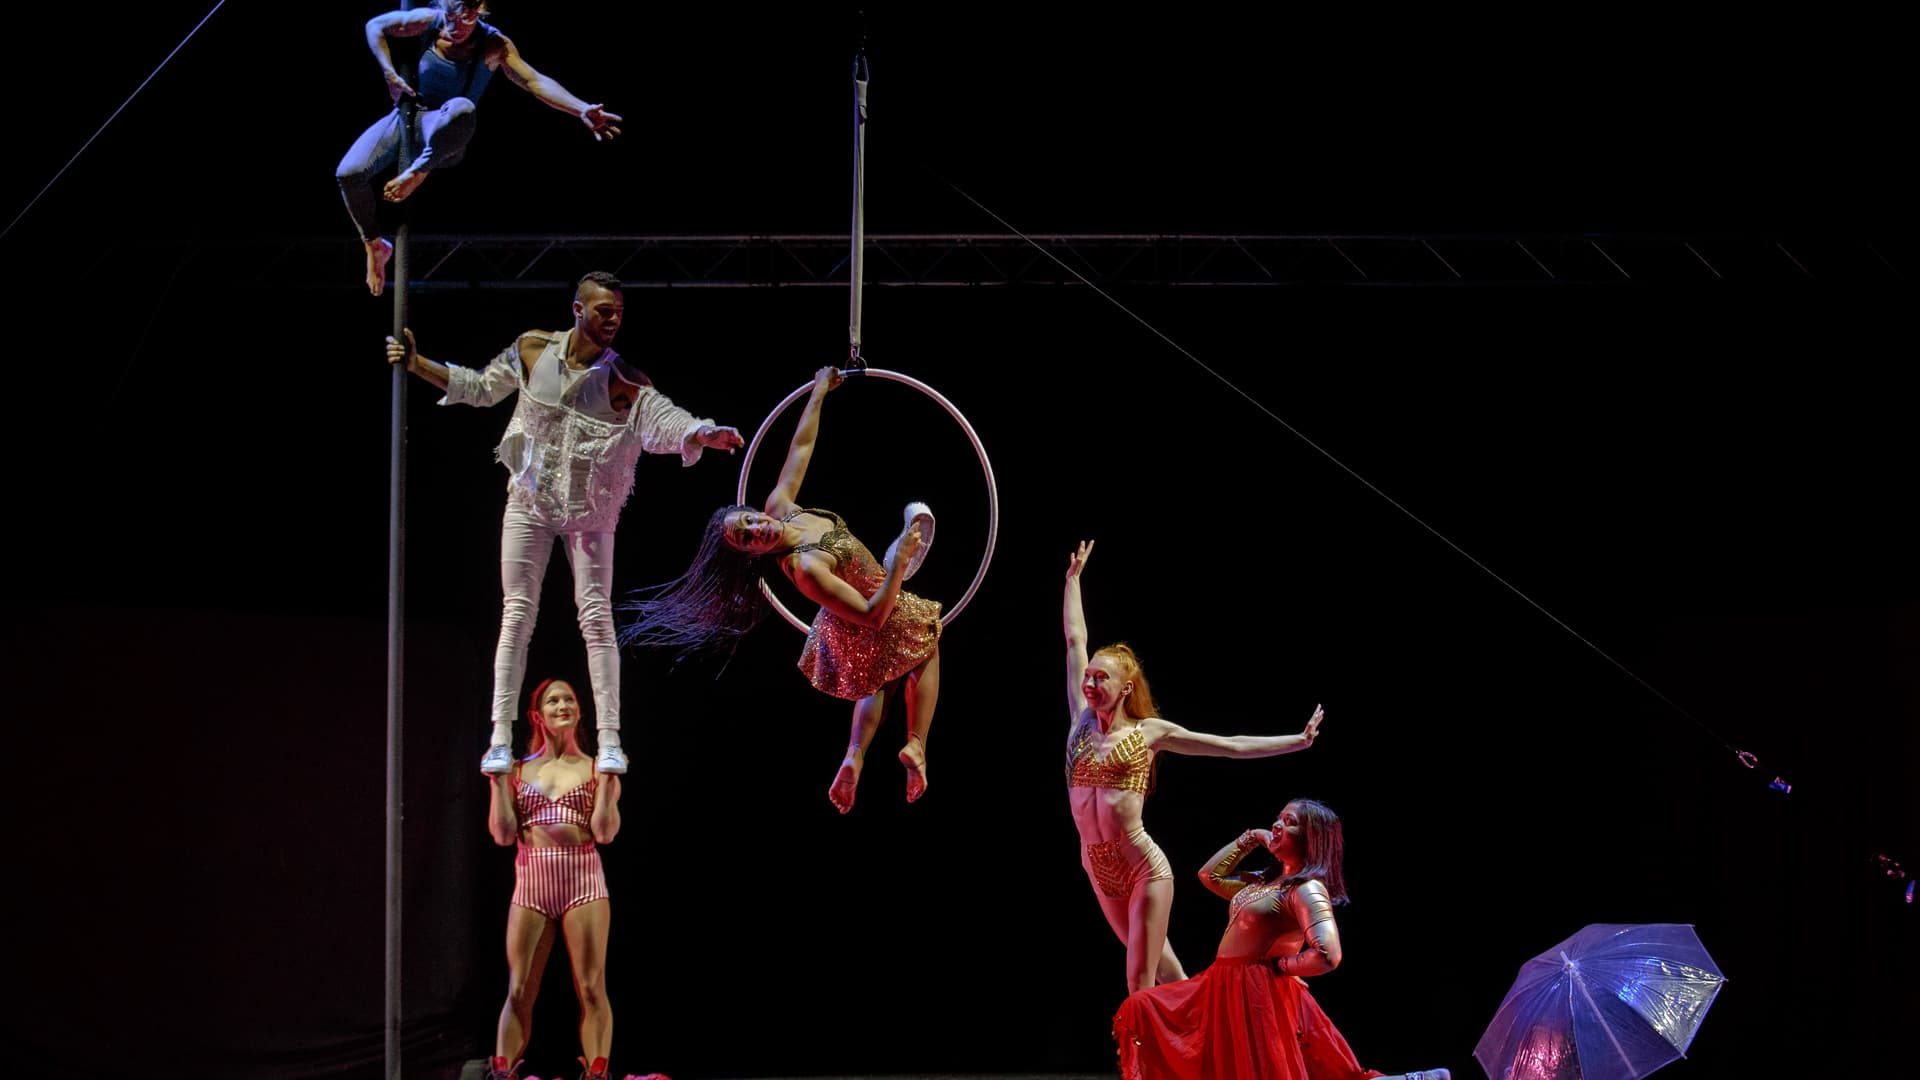 Aerial performers, one hanging from a rope, one sat in a hoop, one balancing on another's hands, and two smiling and dancing together